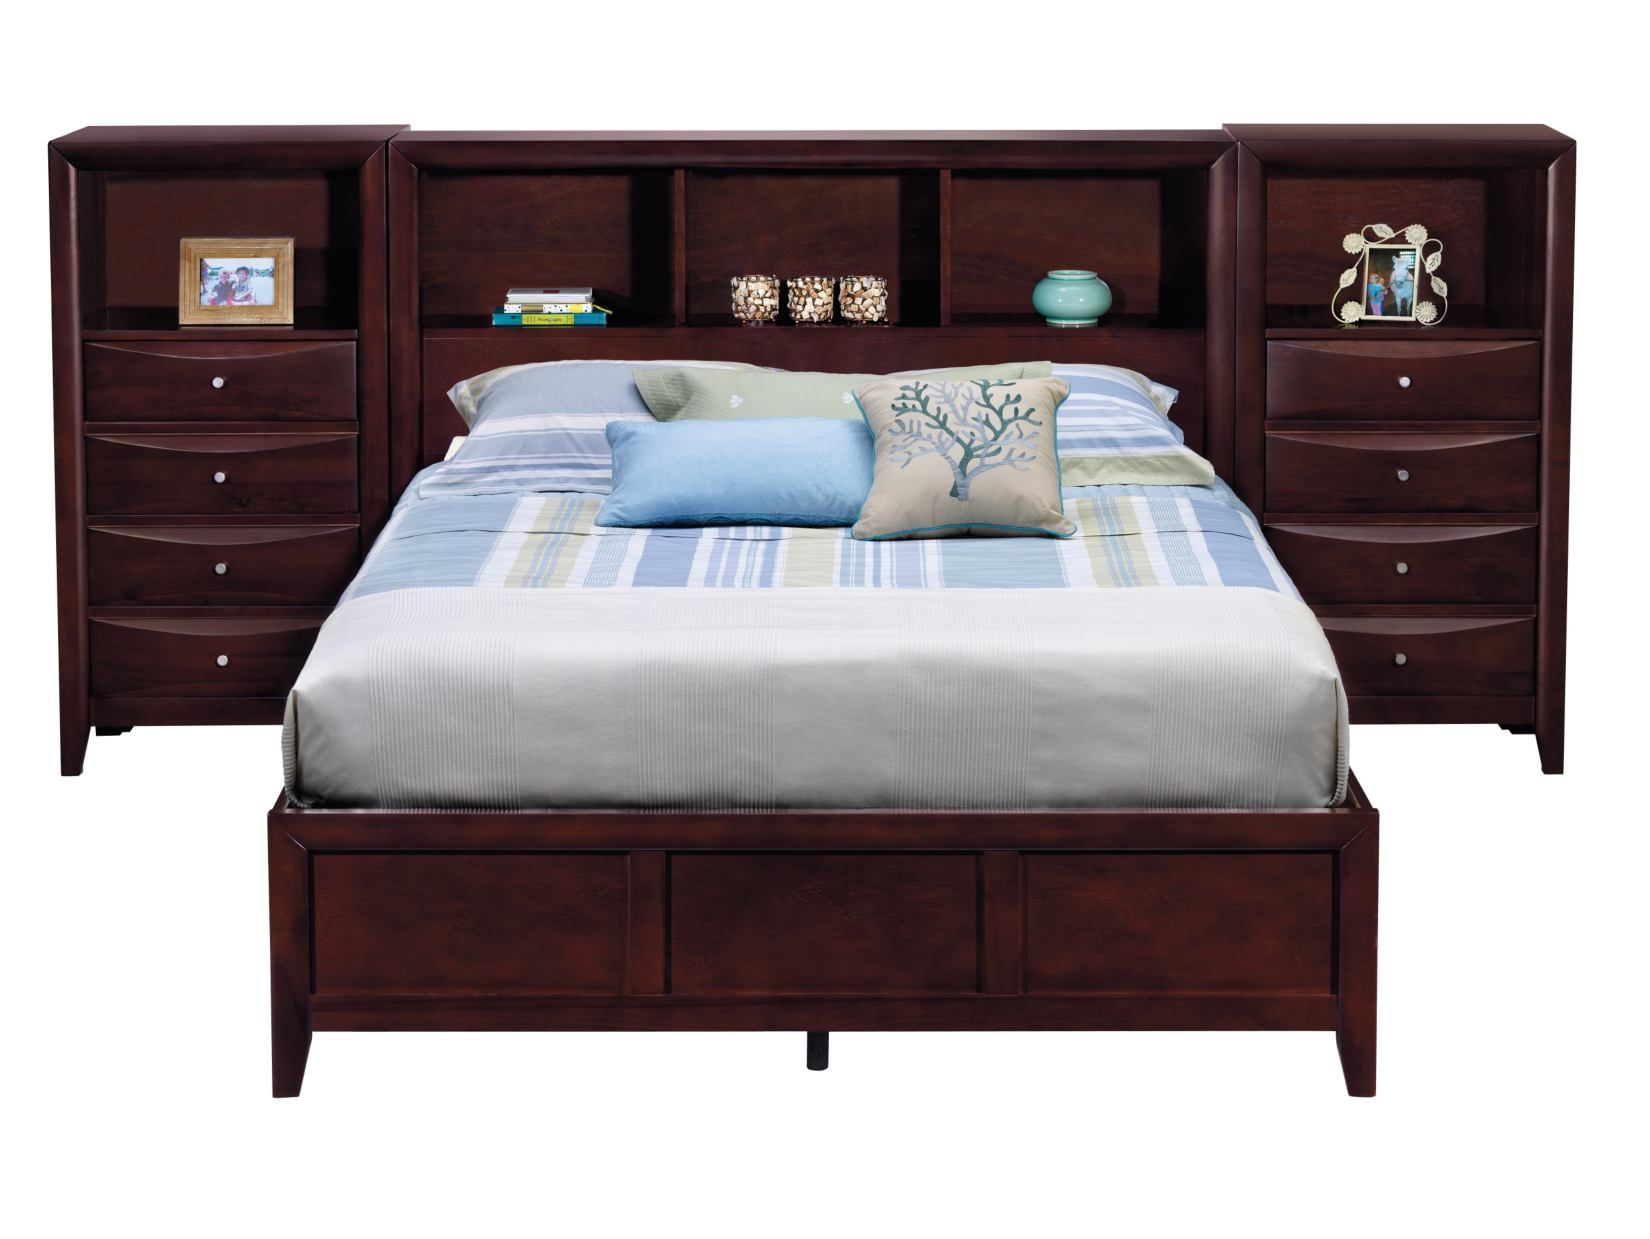 Clarion 5 Pc Wall Bed With Piers American Signature